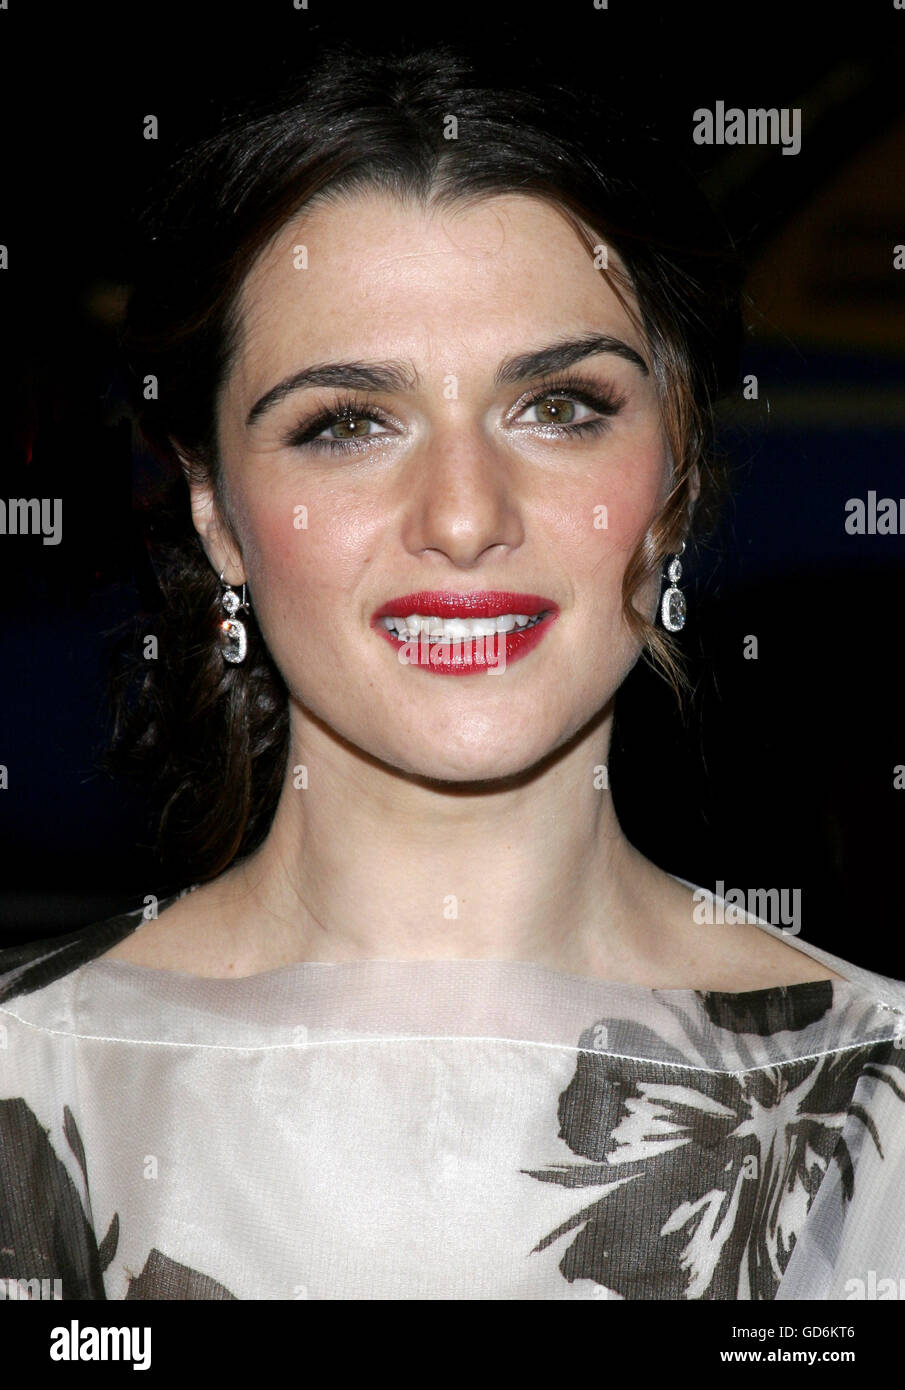 HOLLYWOOD, CALIFORNIA. Saturday November 11, 2006. Rachel Weisz attends the AFI Centerpiece Gala Screening of 'The - Stock Image